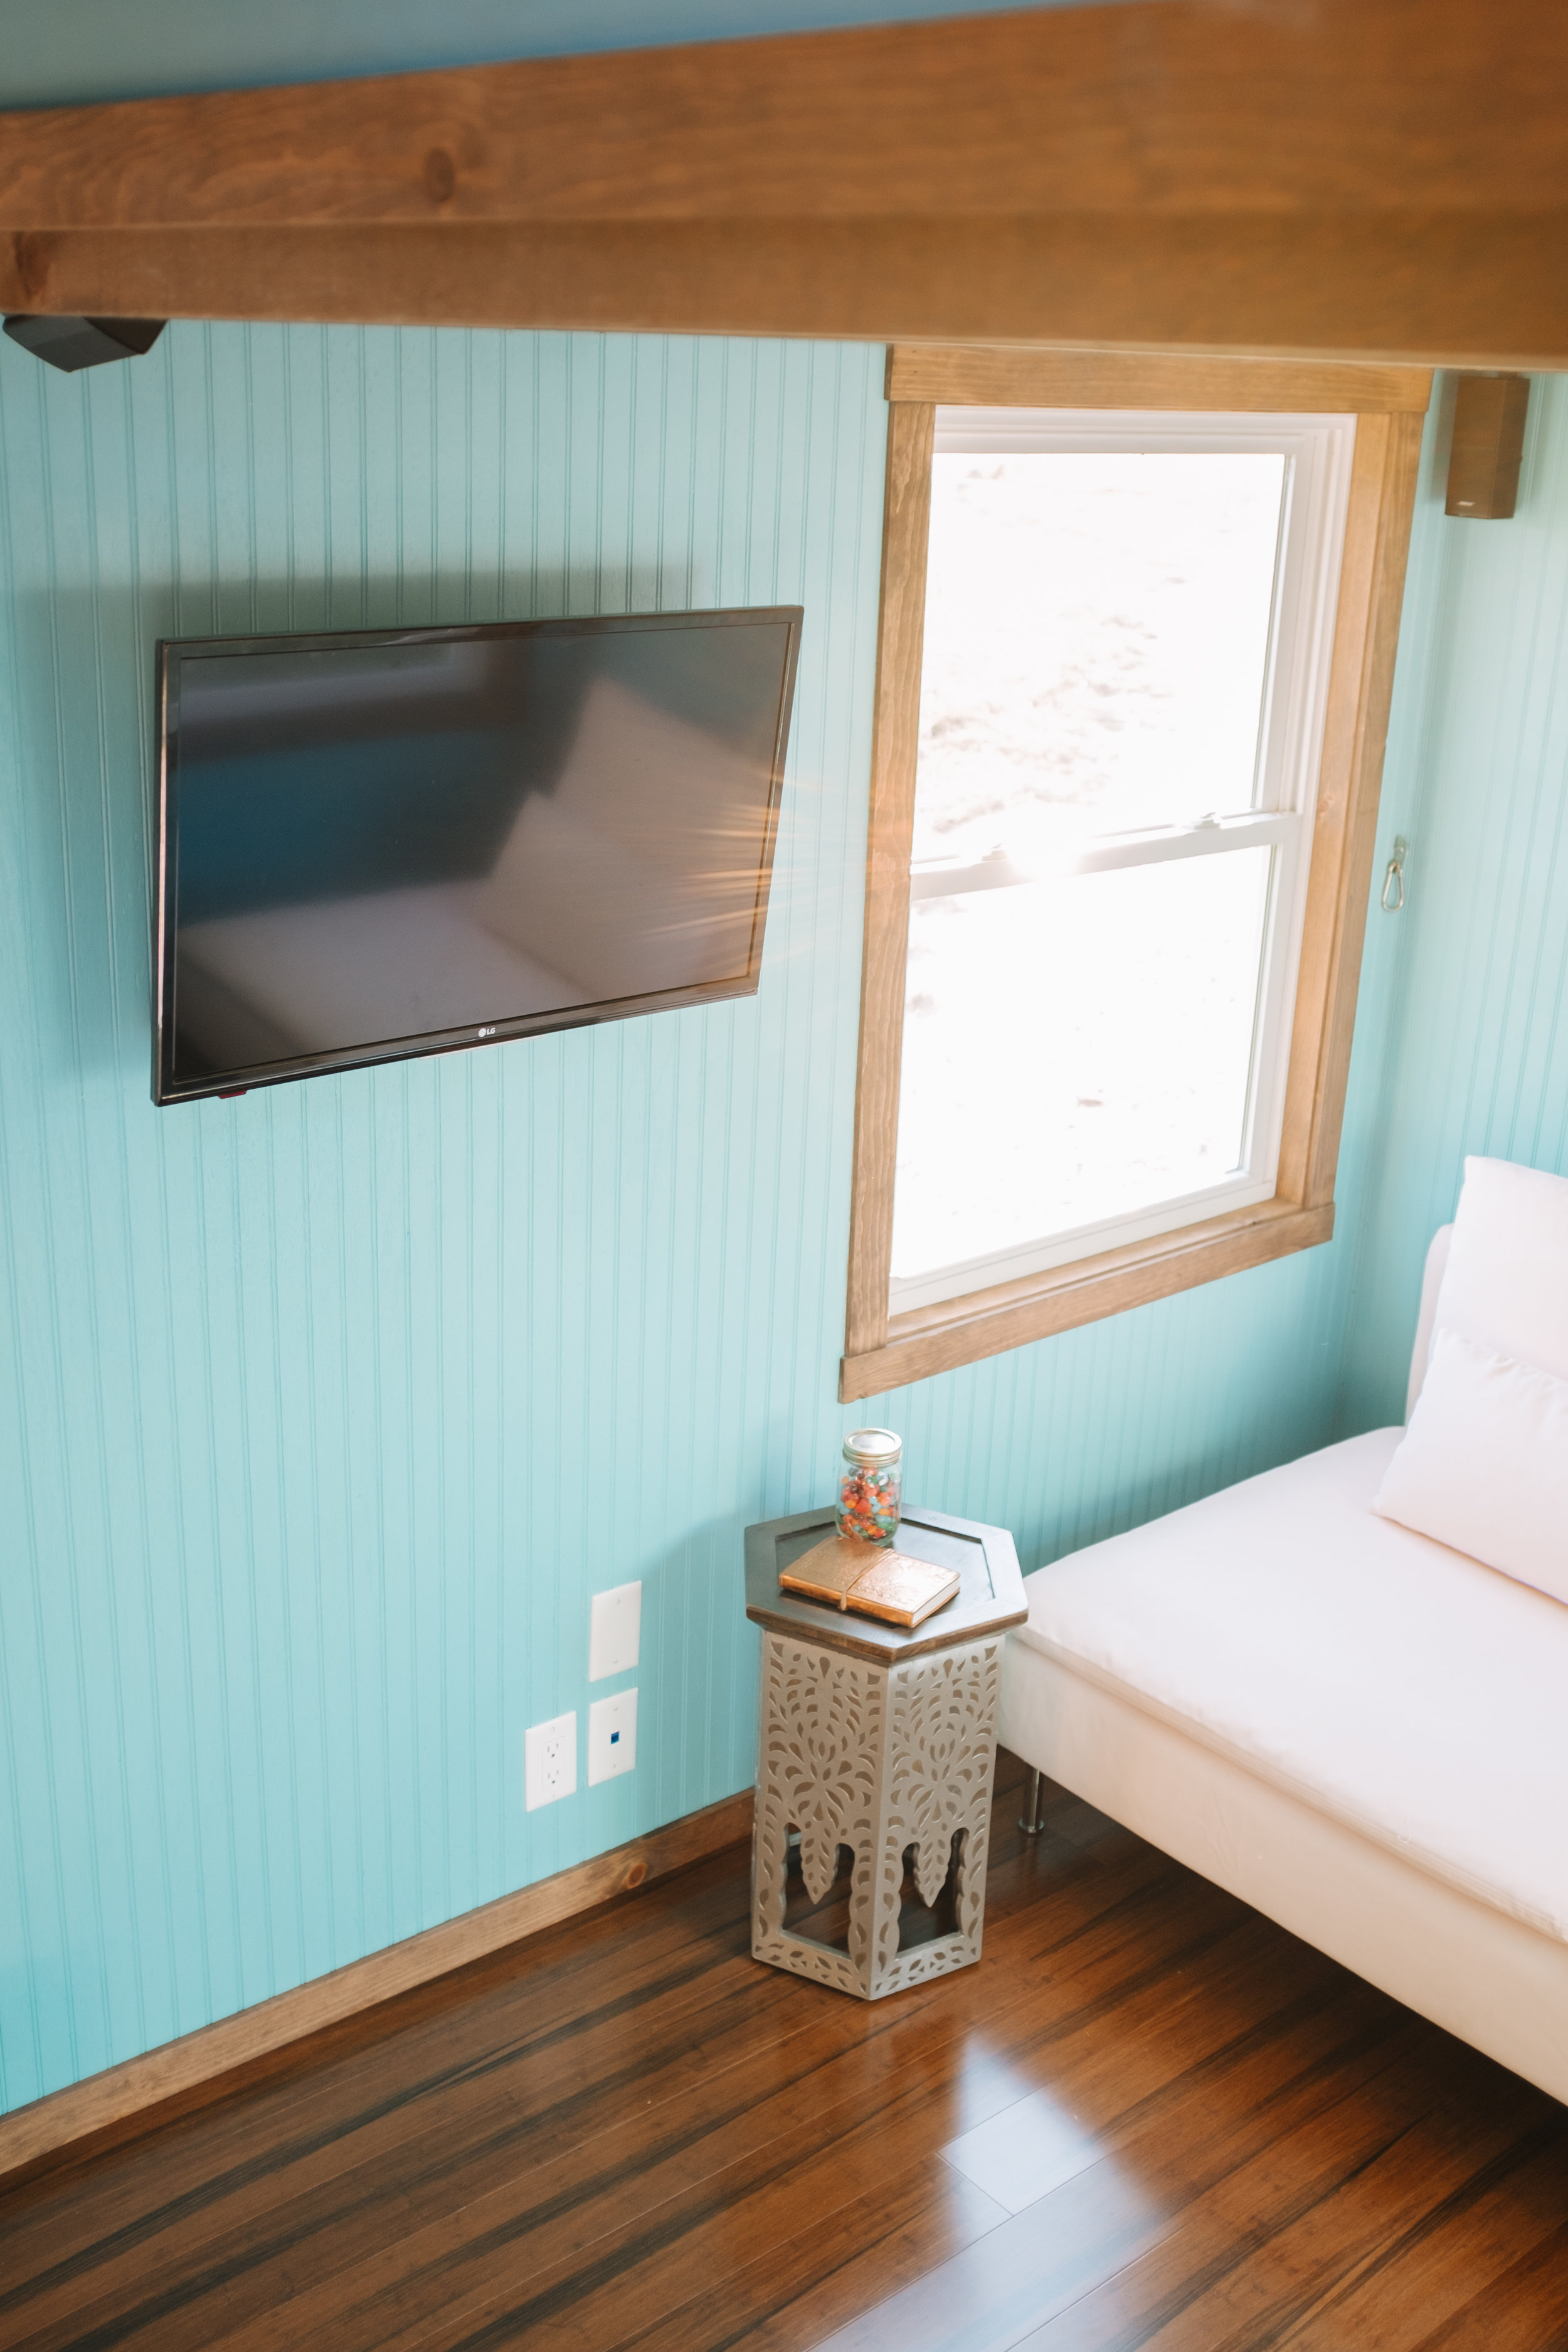 The Big Whimsy by Wind River Tiny Homes - bead board siding, contemporary love seat, BOSE surround sound stystem